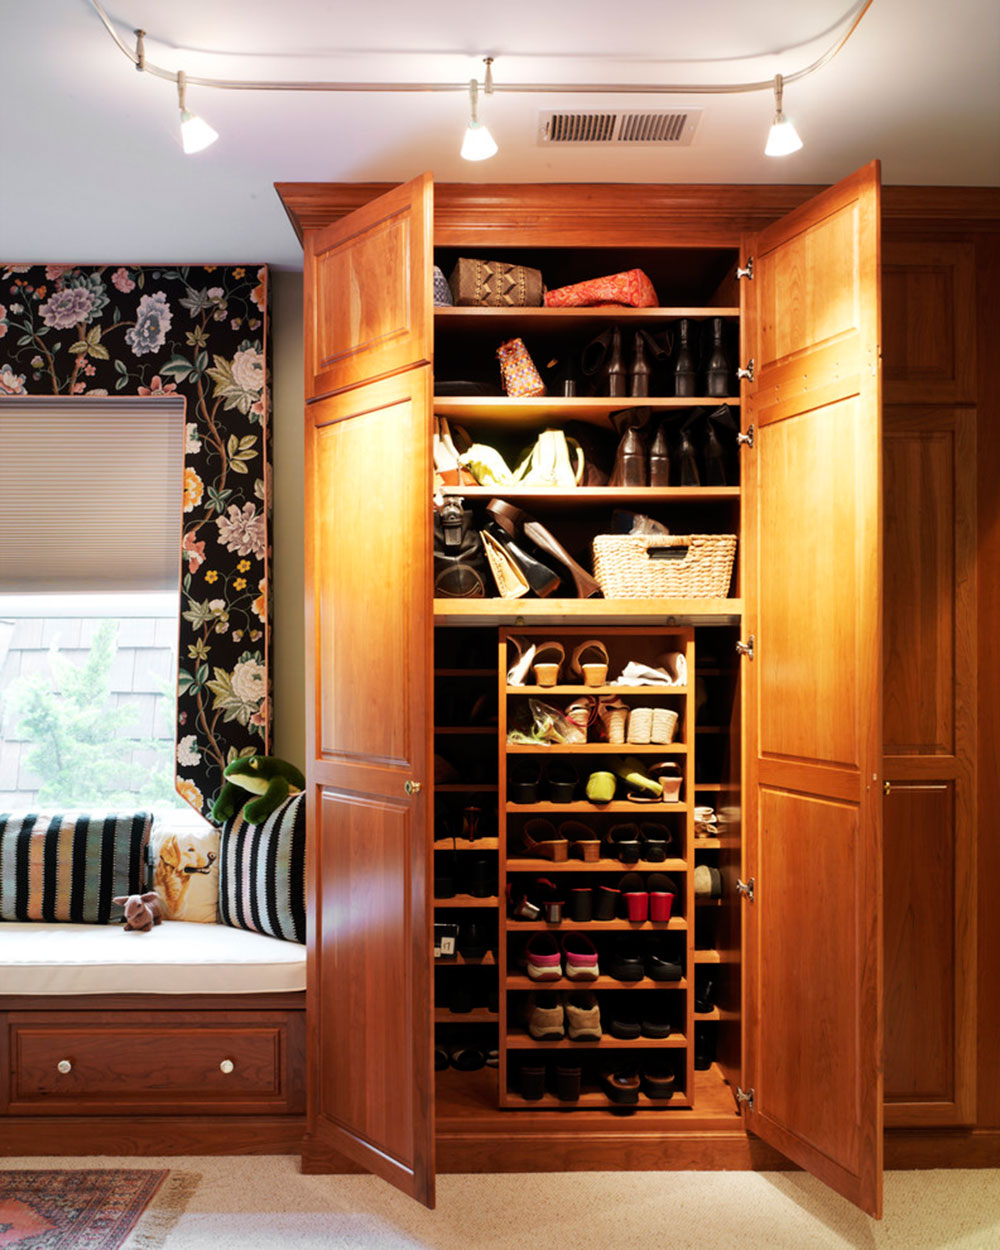 Delicieux Mysterious And Modern Shoe Storage. Make Your Dreams Come True With These  Shoe